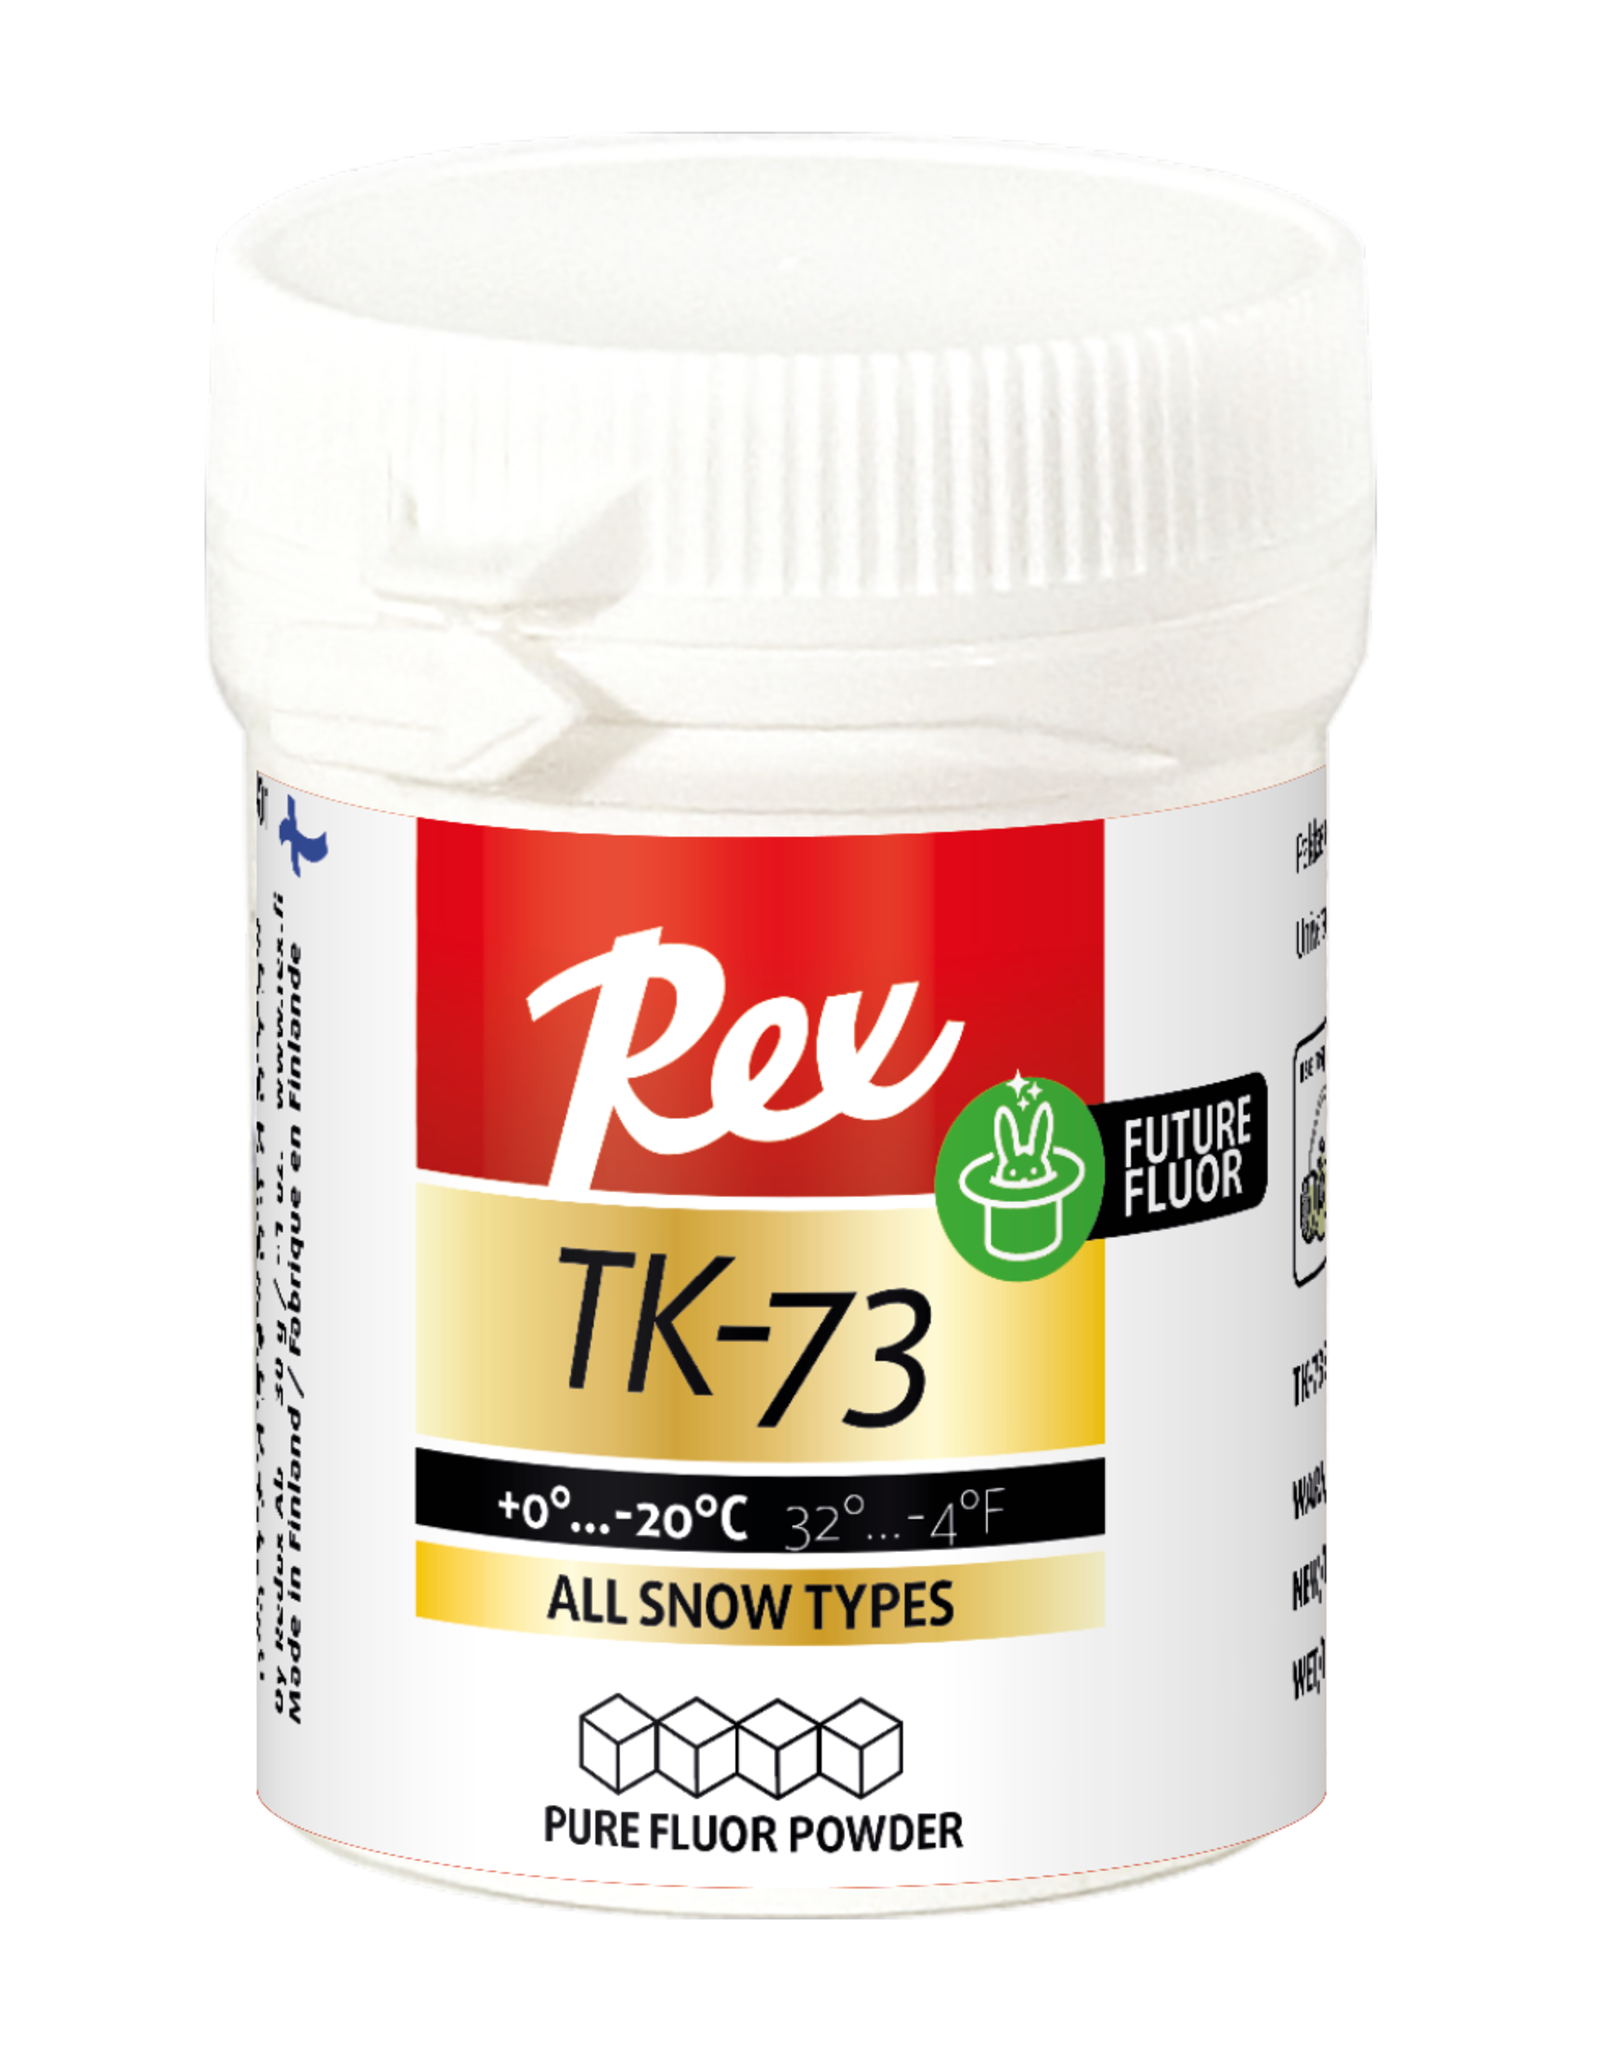 Rex TK-73 Fluoro Powder 20g